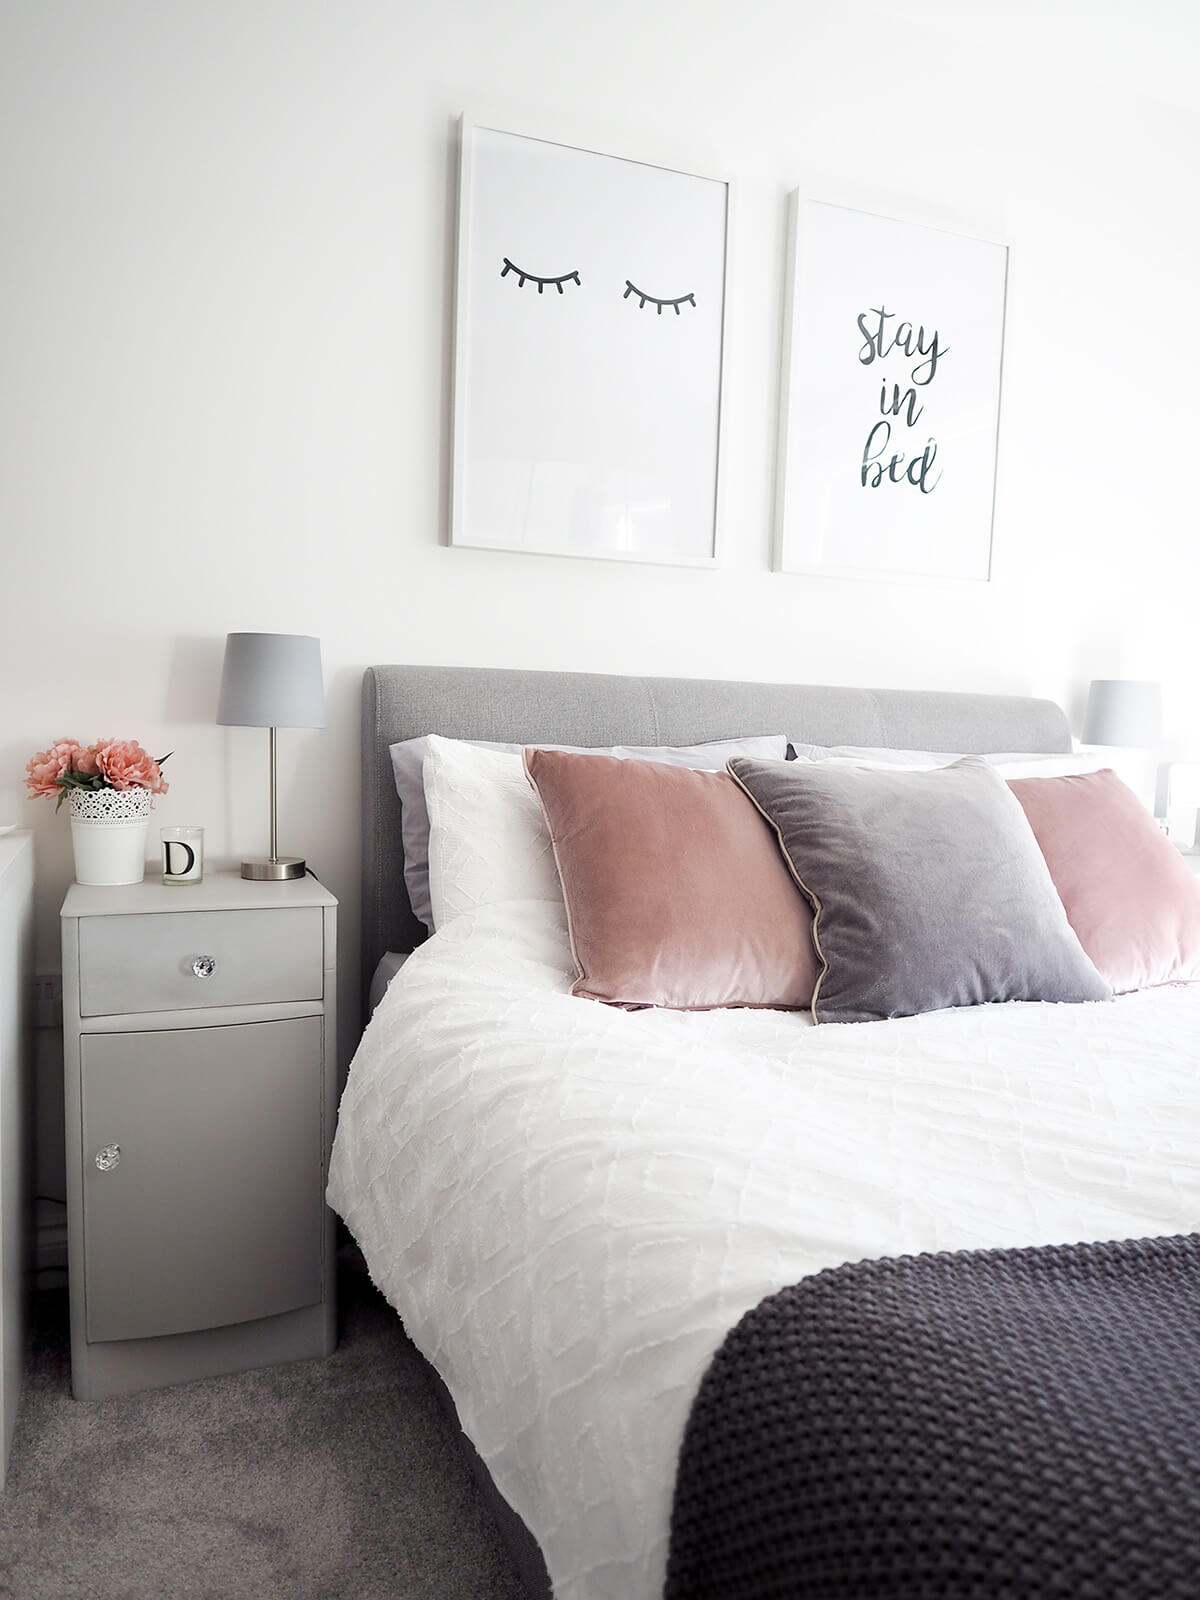 14 Best Trendy Bedroom Decor And Design Ideas For 2019 in 14 Awesome Tricks of How to Improve New Modern Bedroom Designs